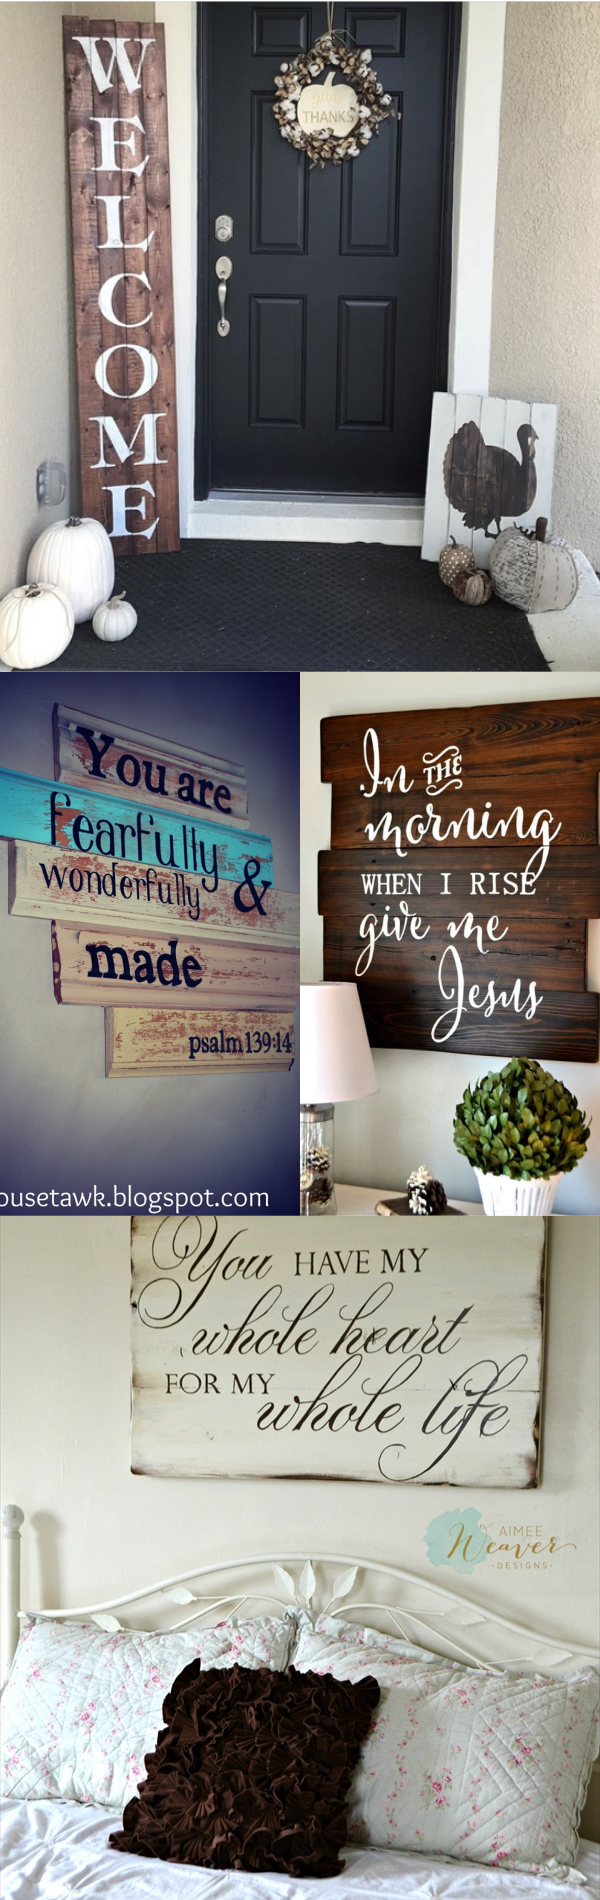 Amazing Wood Sign Ideas That Will Give A Rustic Look To Your Home 2 Amazing Wood Sign Ideas That Will Give A Rustic Look To Your Home